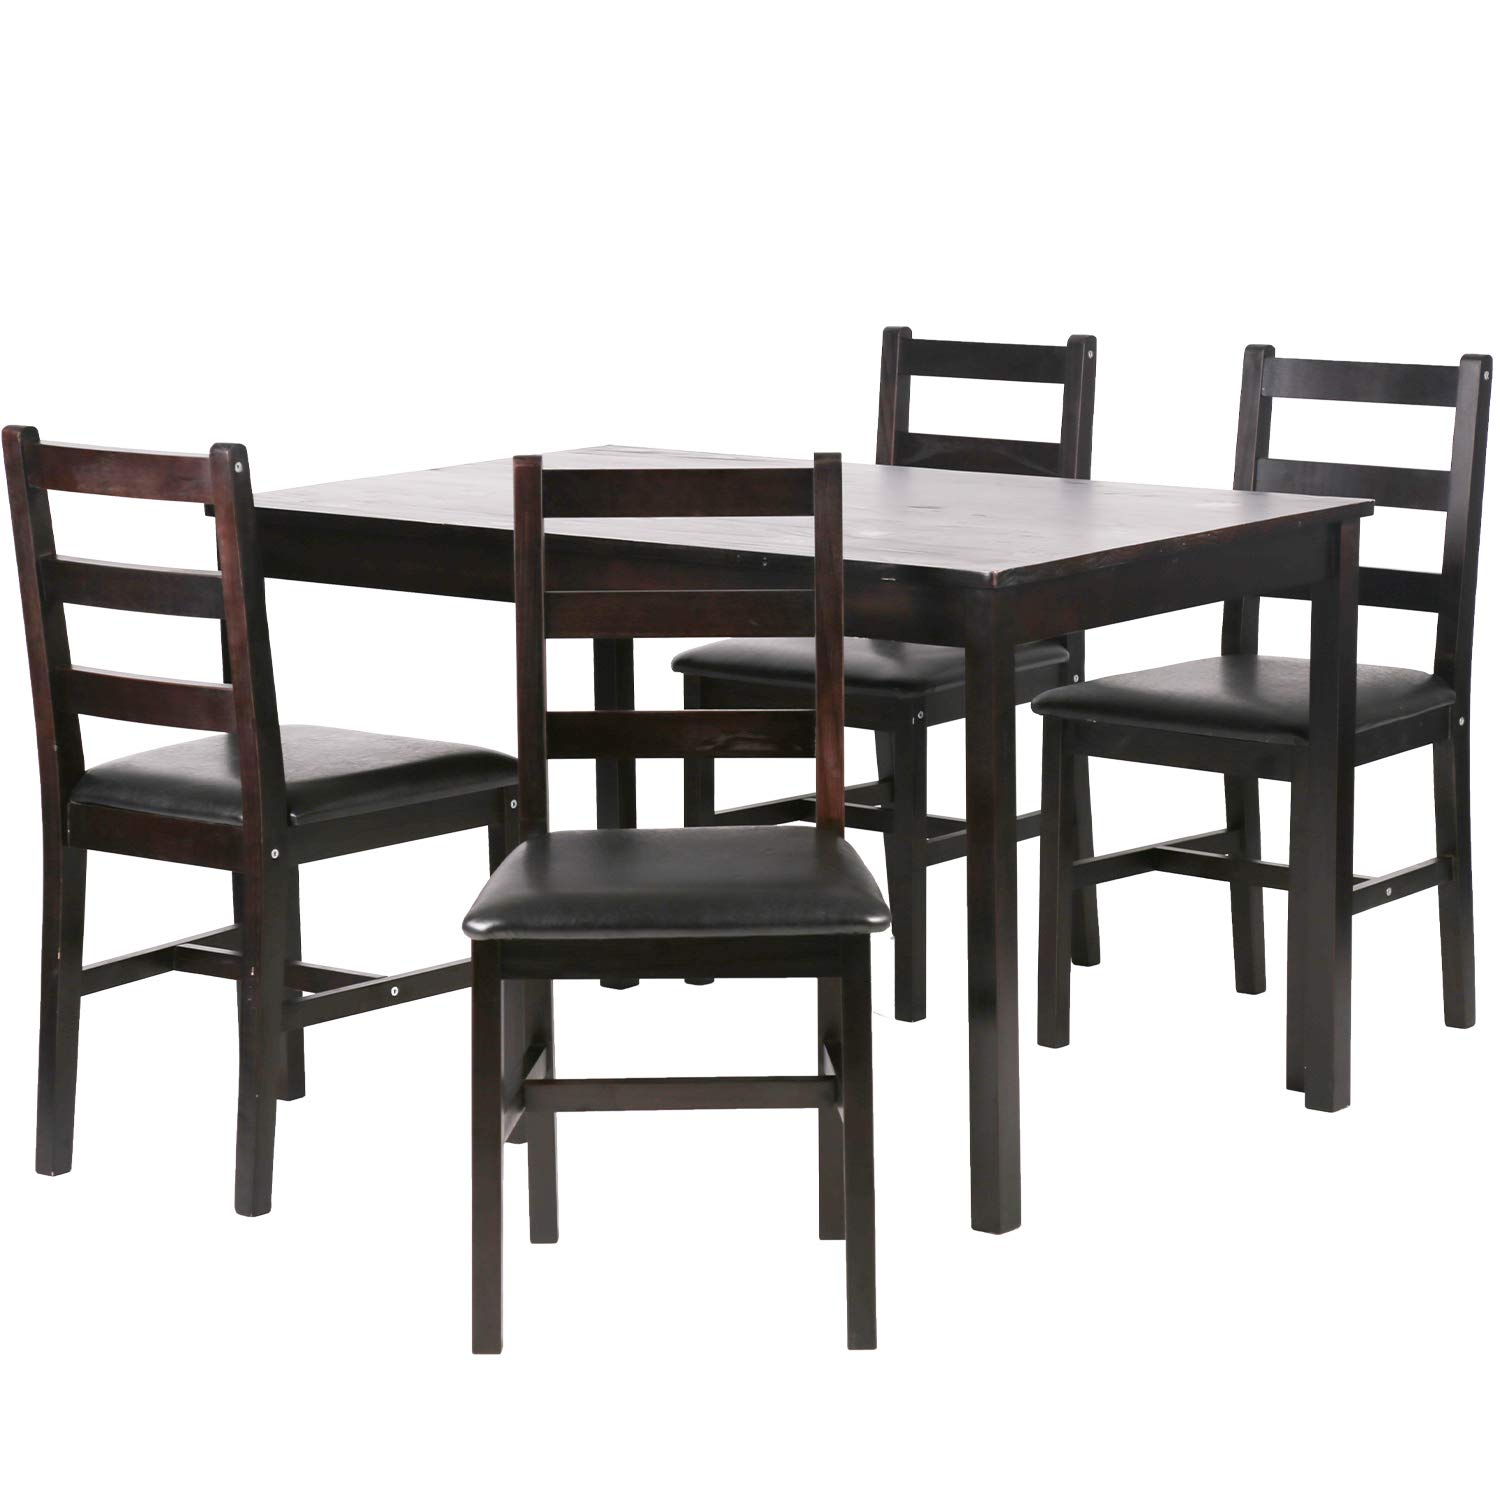 Fdw Dining Table Set Kitchen Dining Table Set Wood Table And Chairs Set Kitchen Table And Chairs For 4 Person Brown